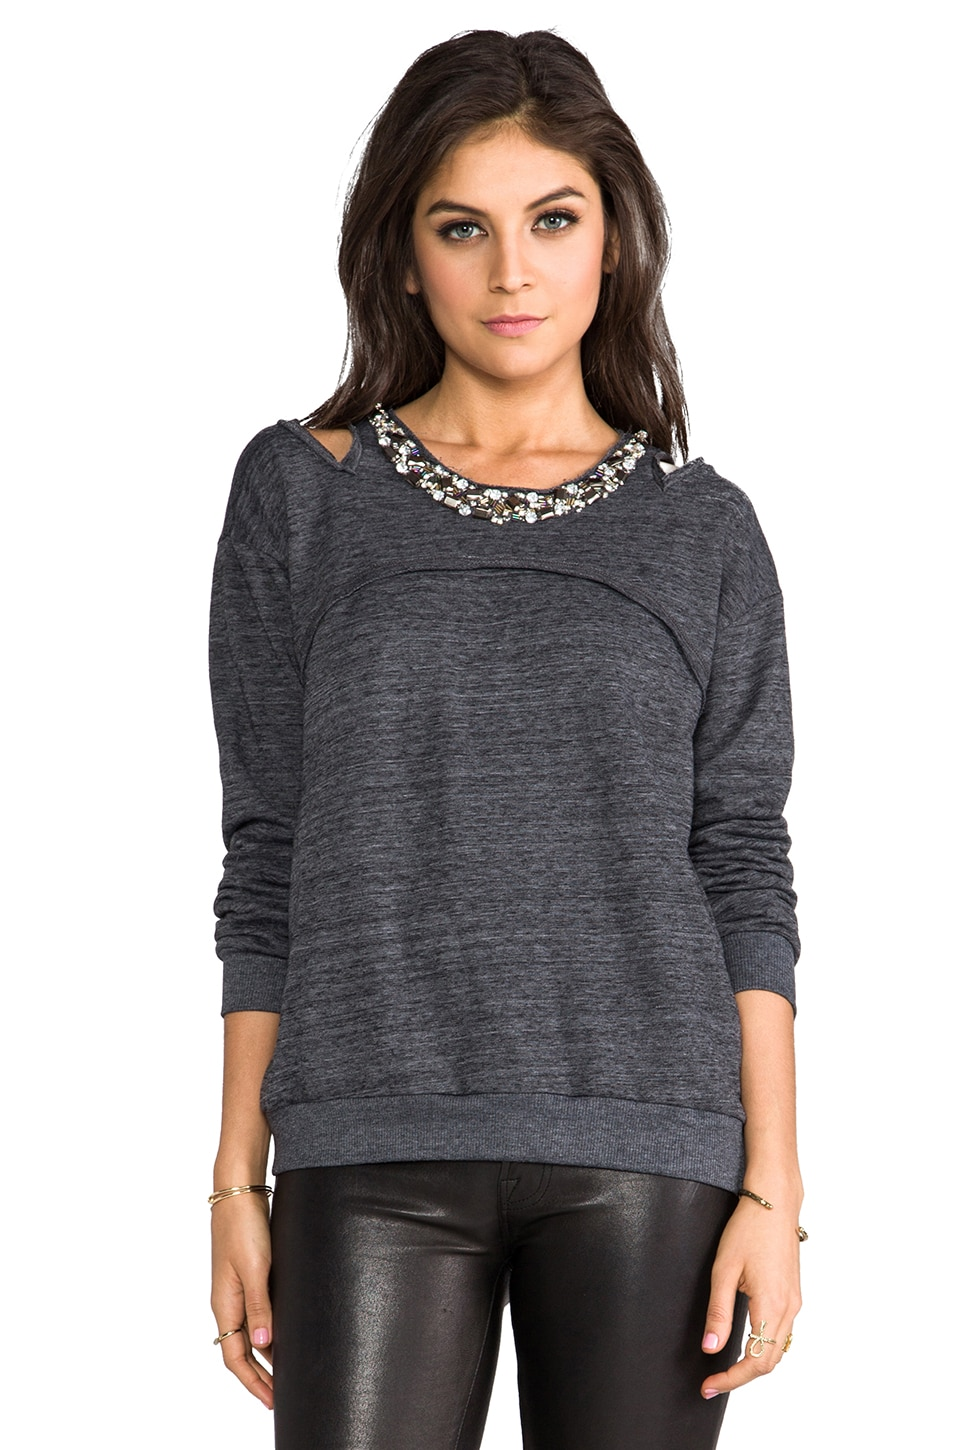 HEARTLOOM Clara Sweatshirt in Heather Tar